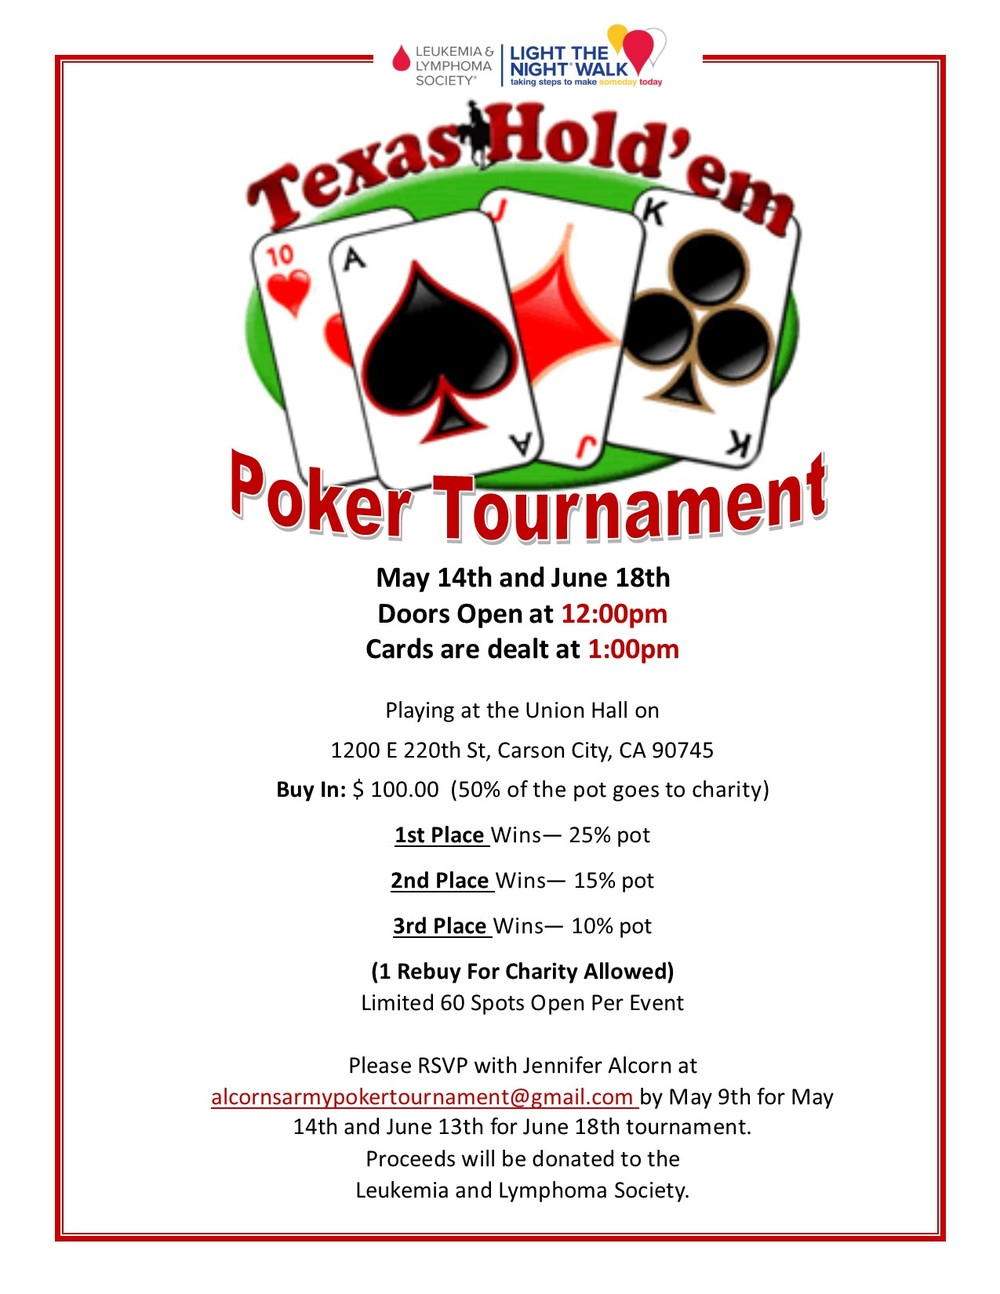 Sisters and brothers we will be having a Poker Tournament/Fundraiser on May 14th and June 18th. We will be holding it at our Carson Hall located @ 1200 E. 220th St. Carson, CA. 90745. There is a $100.00 Buy in. 1st Place wins- 25% of pot 2nd Place wins- 15% of pot 3rd Place wins- 10% of pot You can RSVP with Jennifer Alcorn at alcornsarmypokertournament@gmail.com by May 9th for May 14th and June 13th for June 18th Tournament.